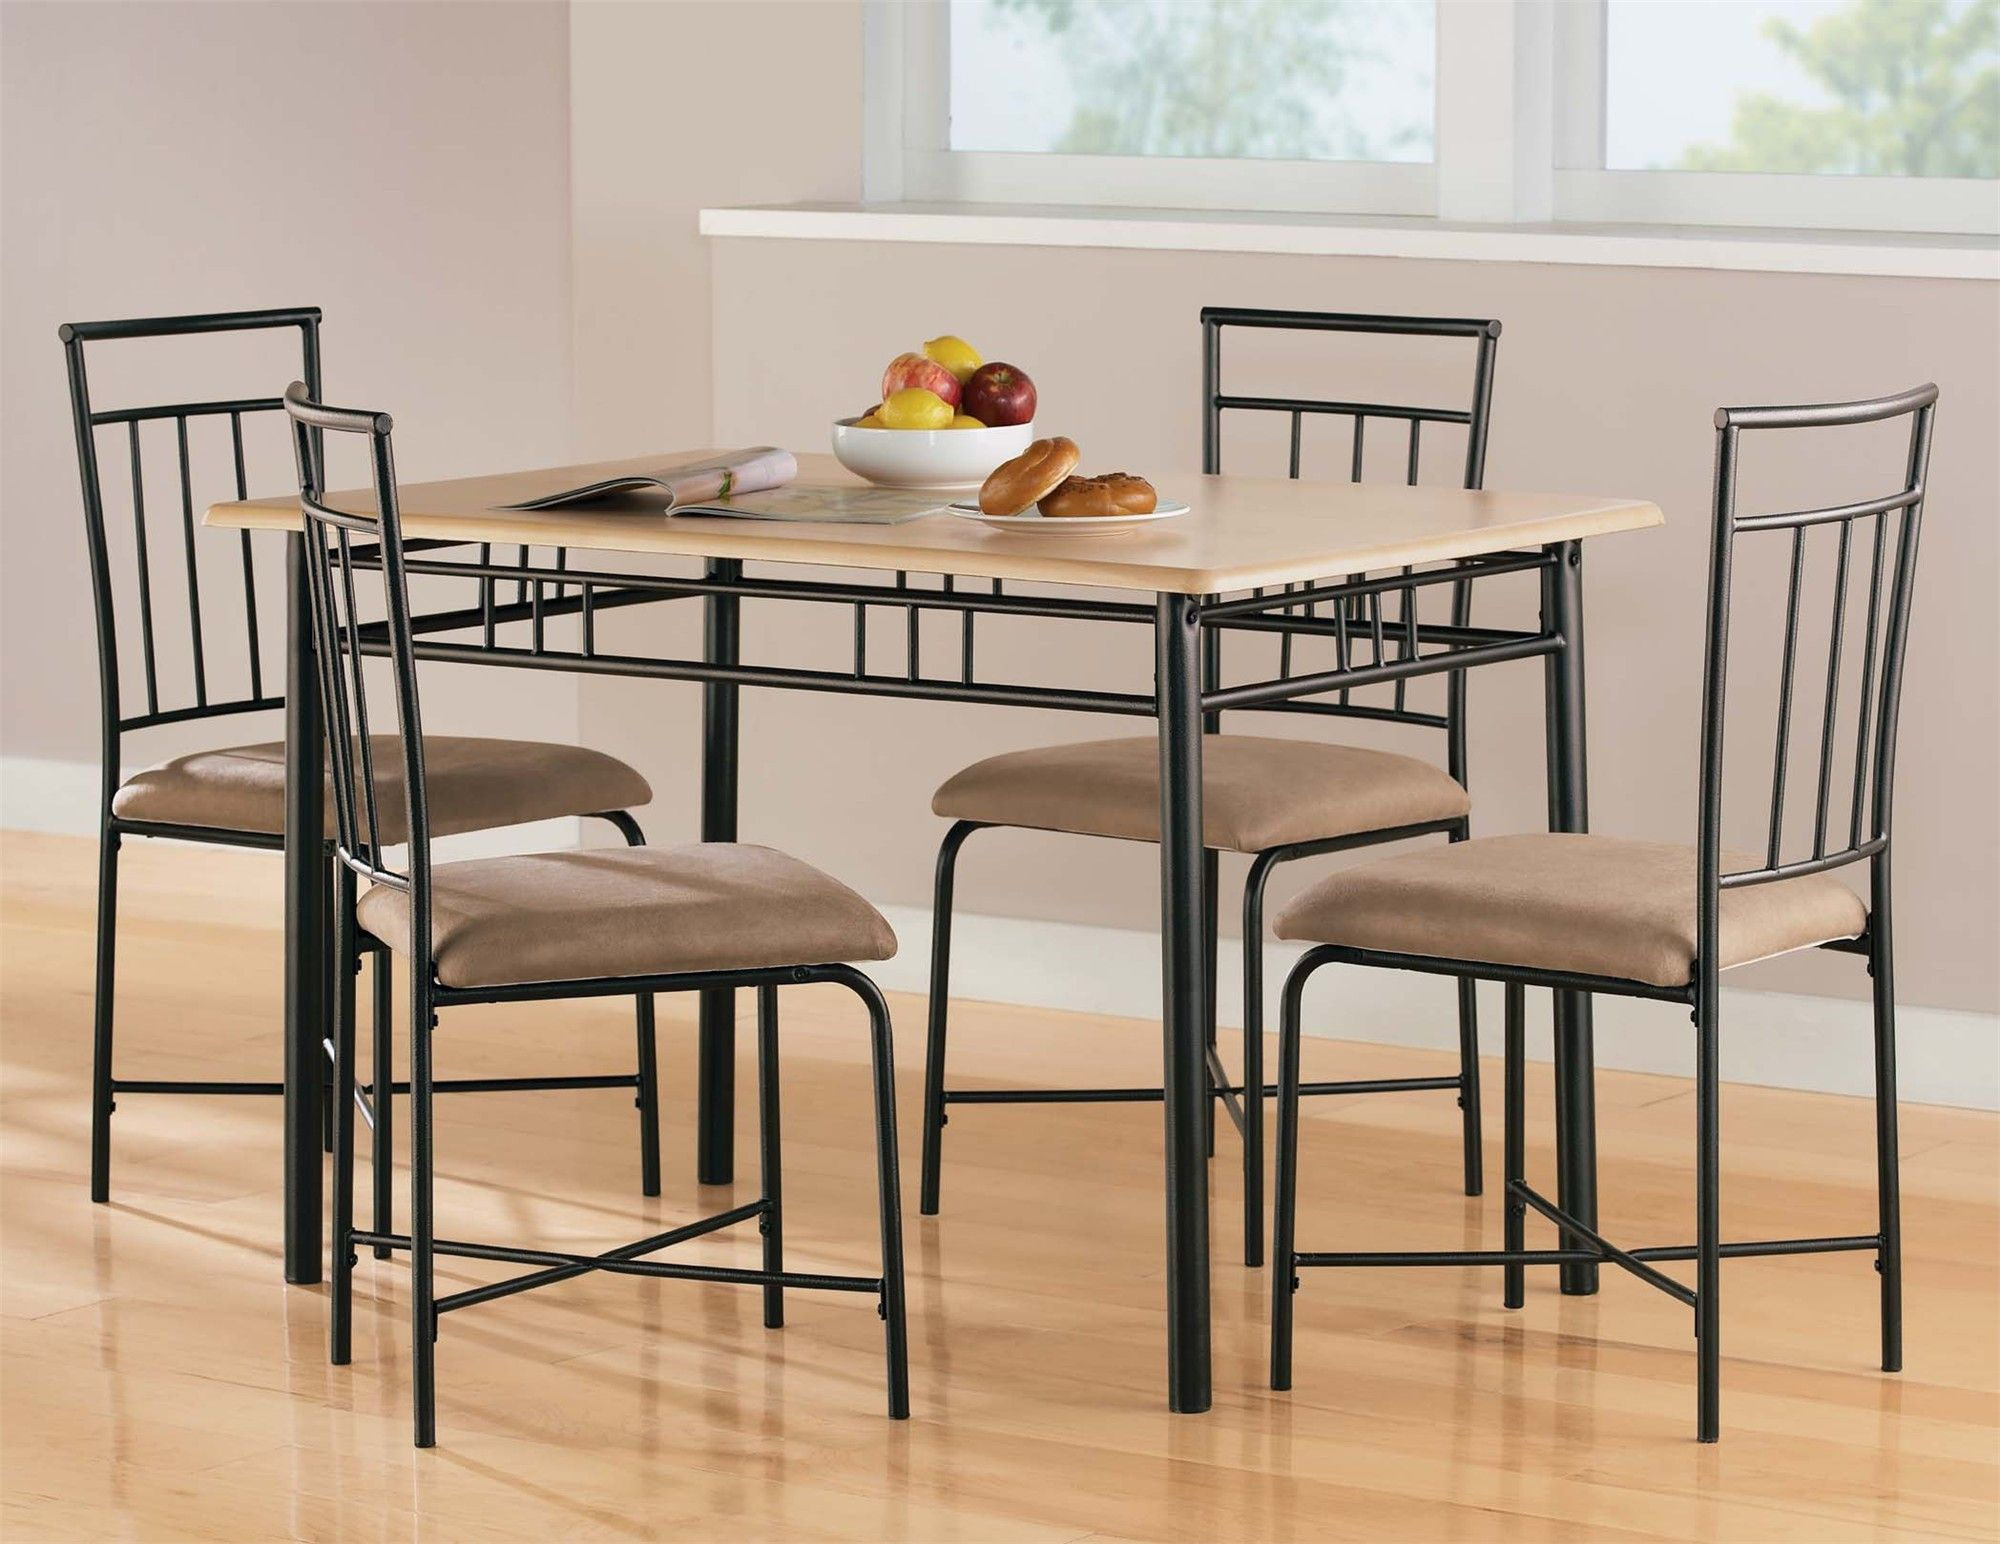 Dining Room Unique Furniture Sets With Black Steel Table 4 Chairs Above Laminate